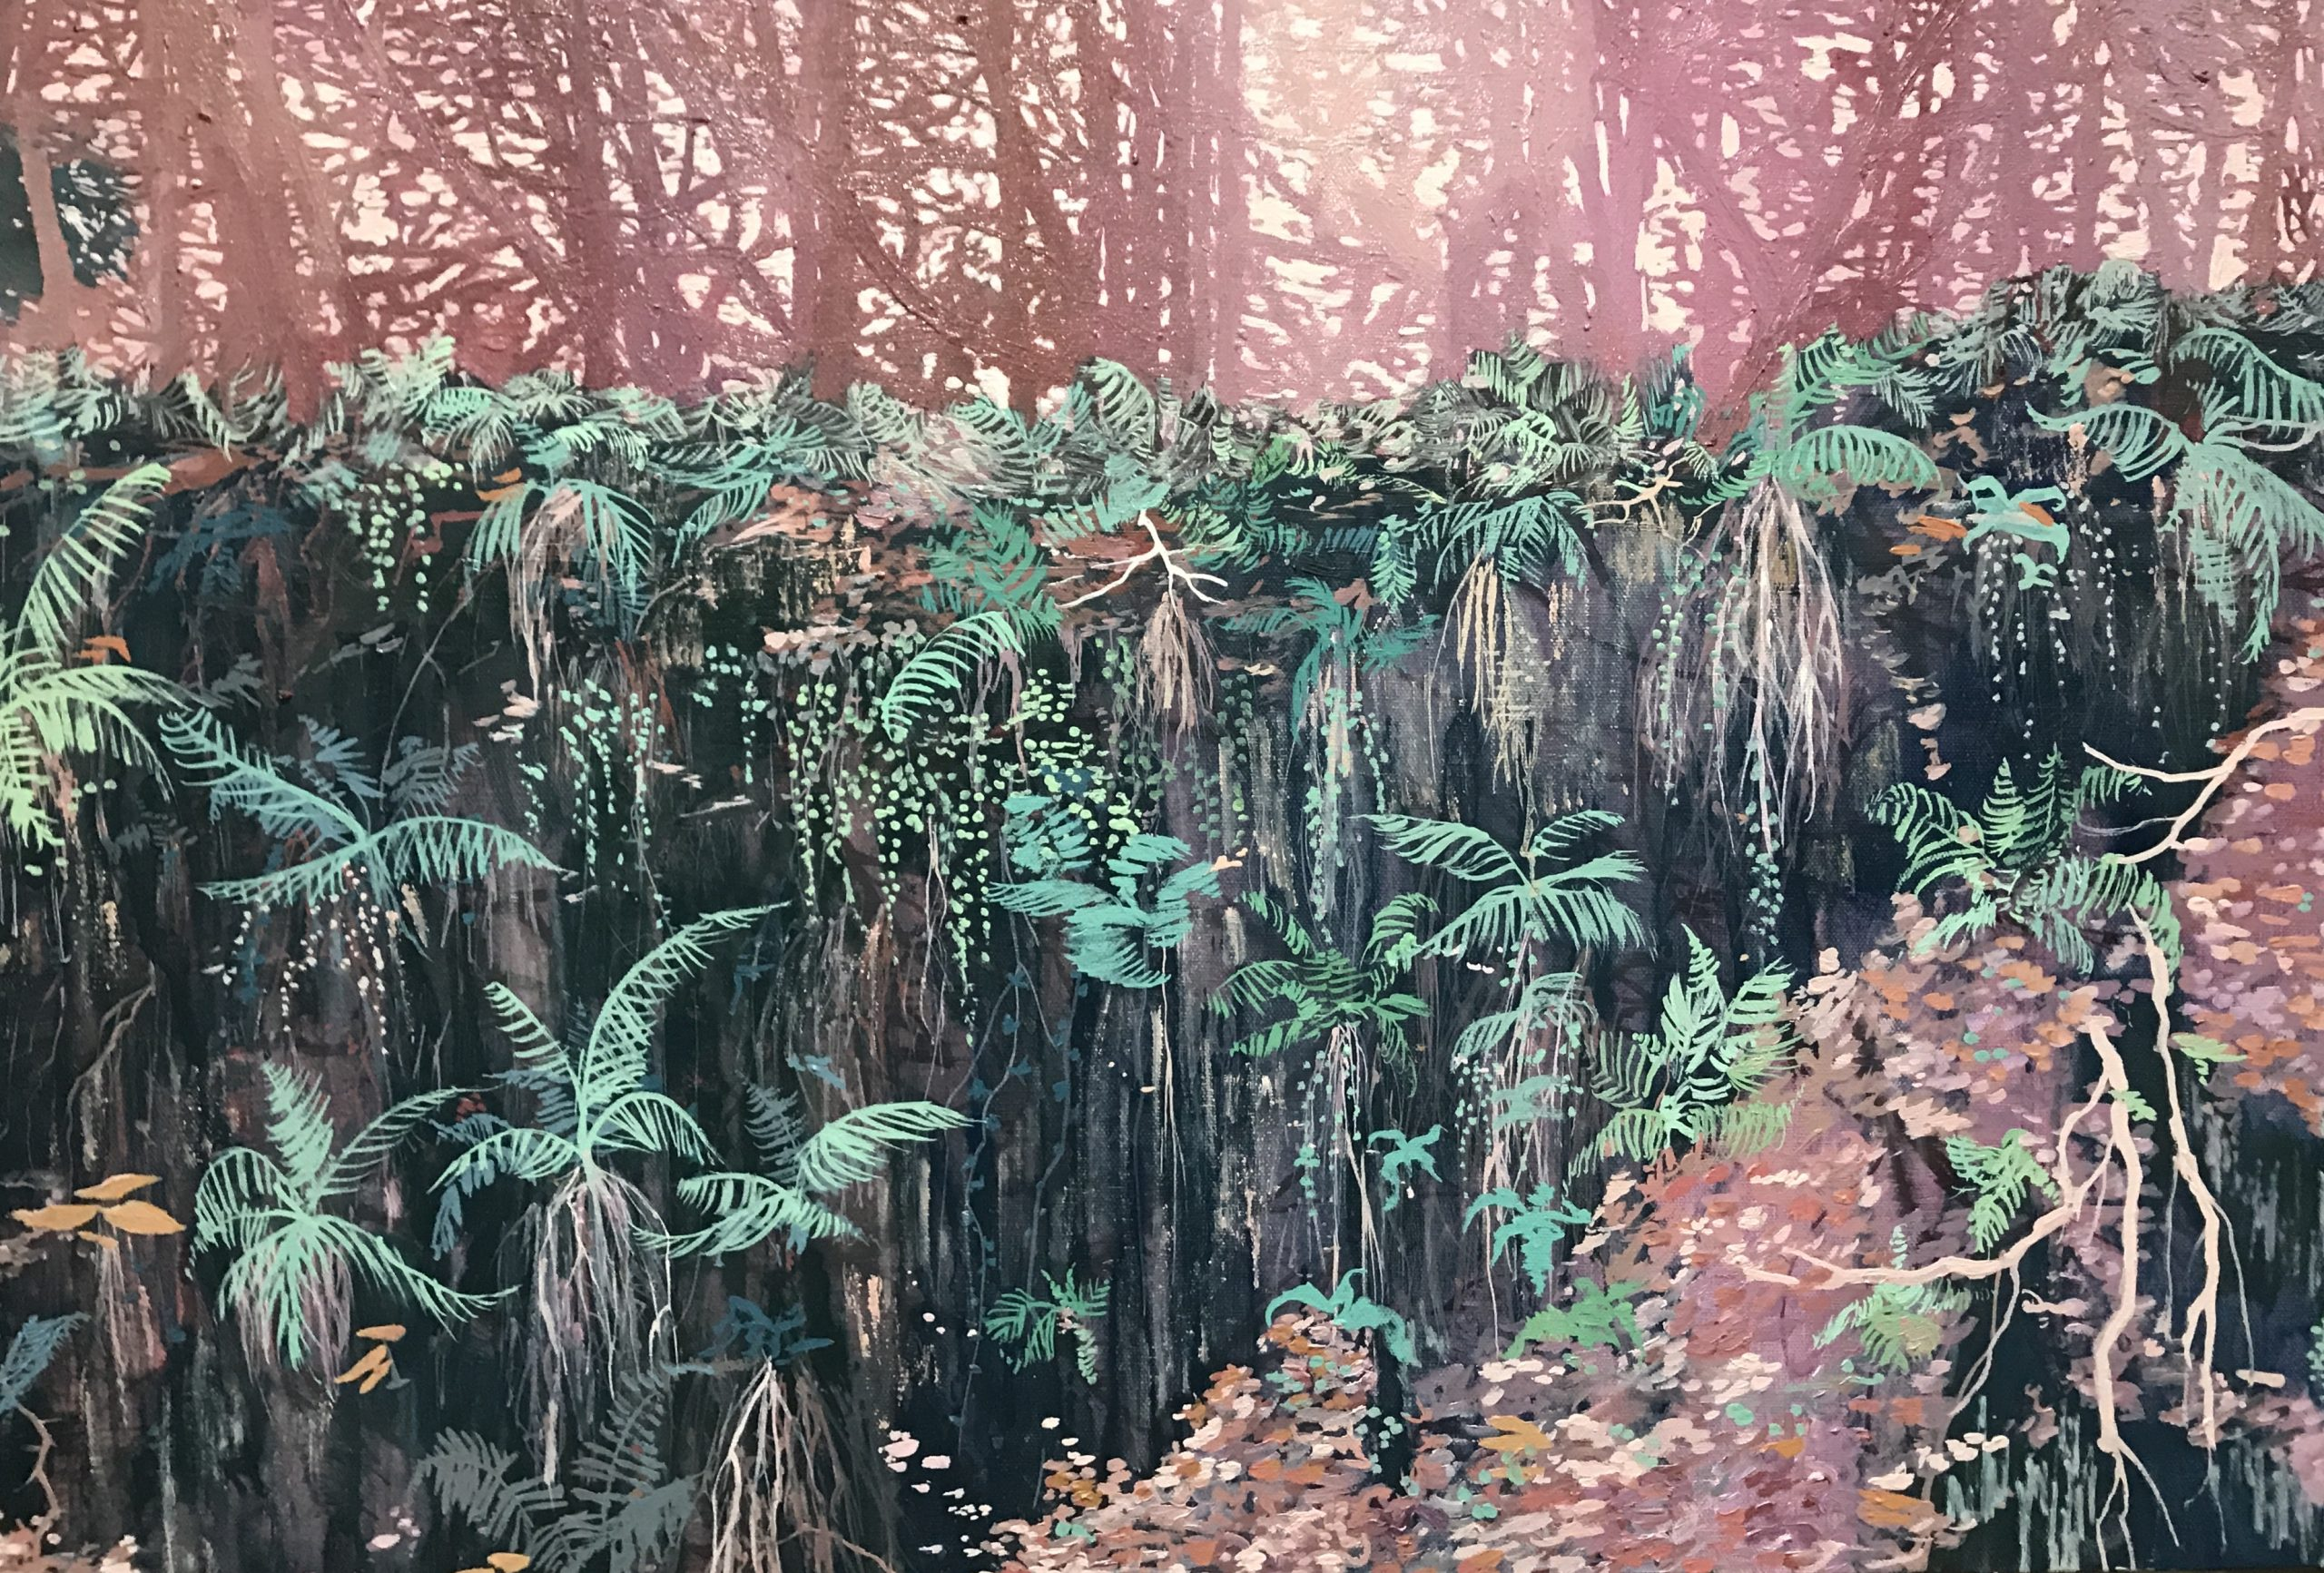 Culbone Woods landscape by Claire Cansick